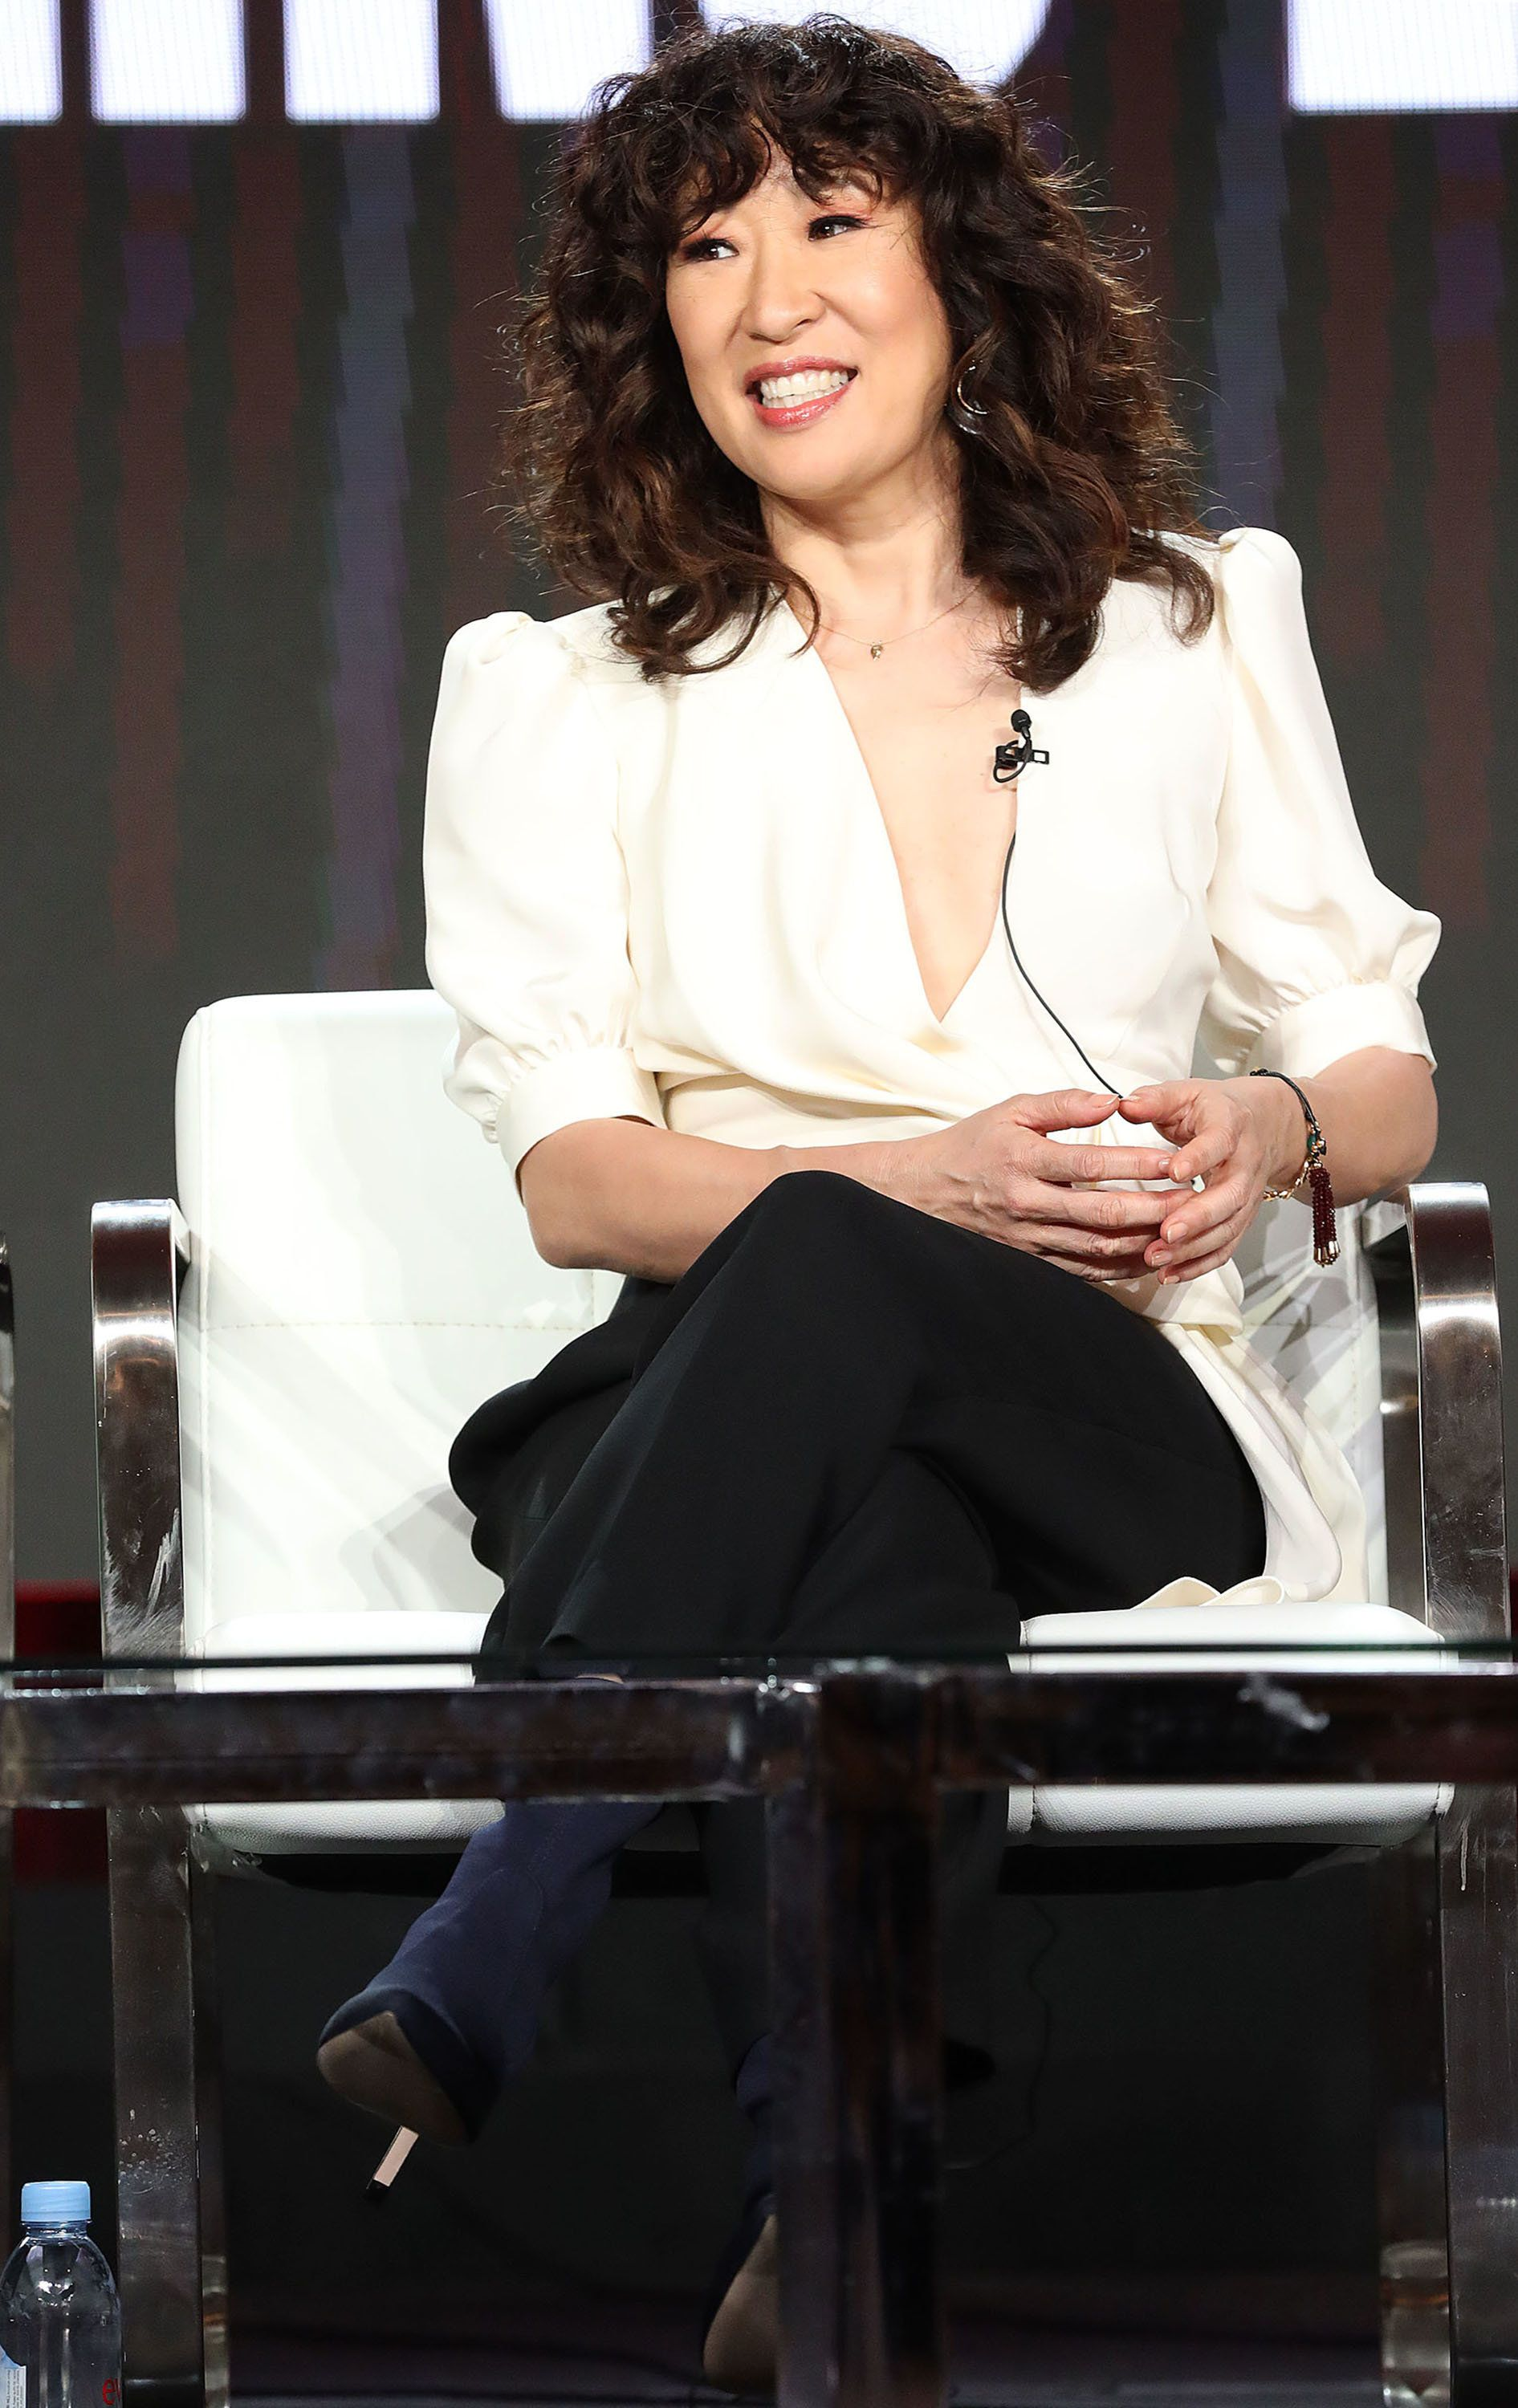 PASADENA, CALIFORNIA - FEBRUARY 09: Sandra Oh of the television show 'Killing Eve' speaks during the BBC America segment of the 2019 Winter Television Critics Association Press Tour at The Langham Huntington, Pasadena on February 09, 2019 in Pasadena, California. (Photo by Frederick M. Brown/Getty Images)